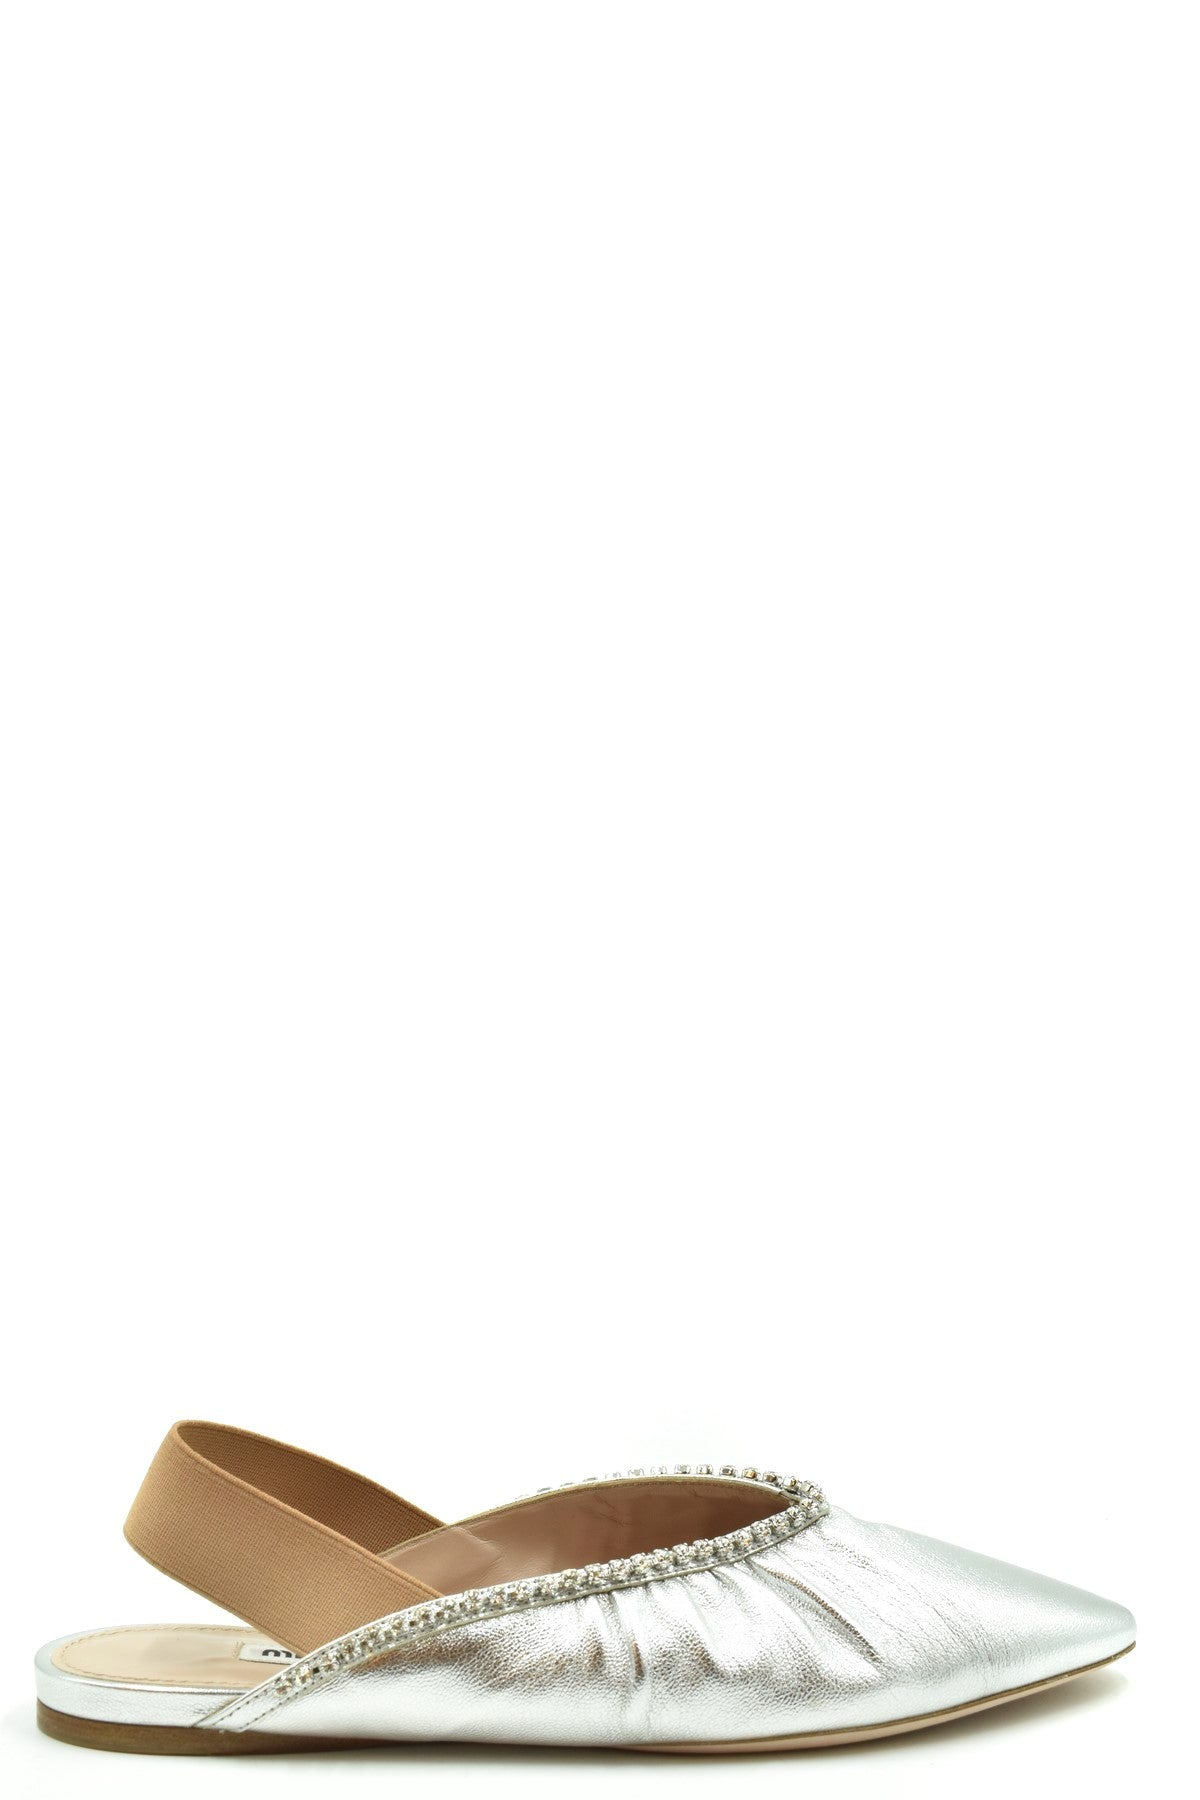 Miu Miu-Women's Fashion - Women's Shoes - Slippers-35.5-Product Details Terms: New With LabelMain Color: SilverType Of Accessory: ShoesSeason: Spring / SummerMade In: ItalyGender: WomanSize: EuComposition: Leather 100%Year: 2020Manufacturer Part Number: 5F919C-Keyomi-Sook